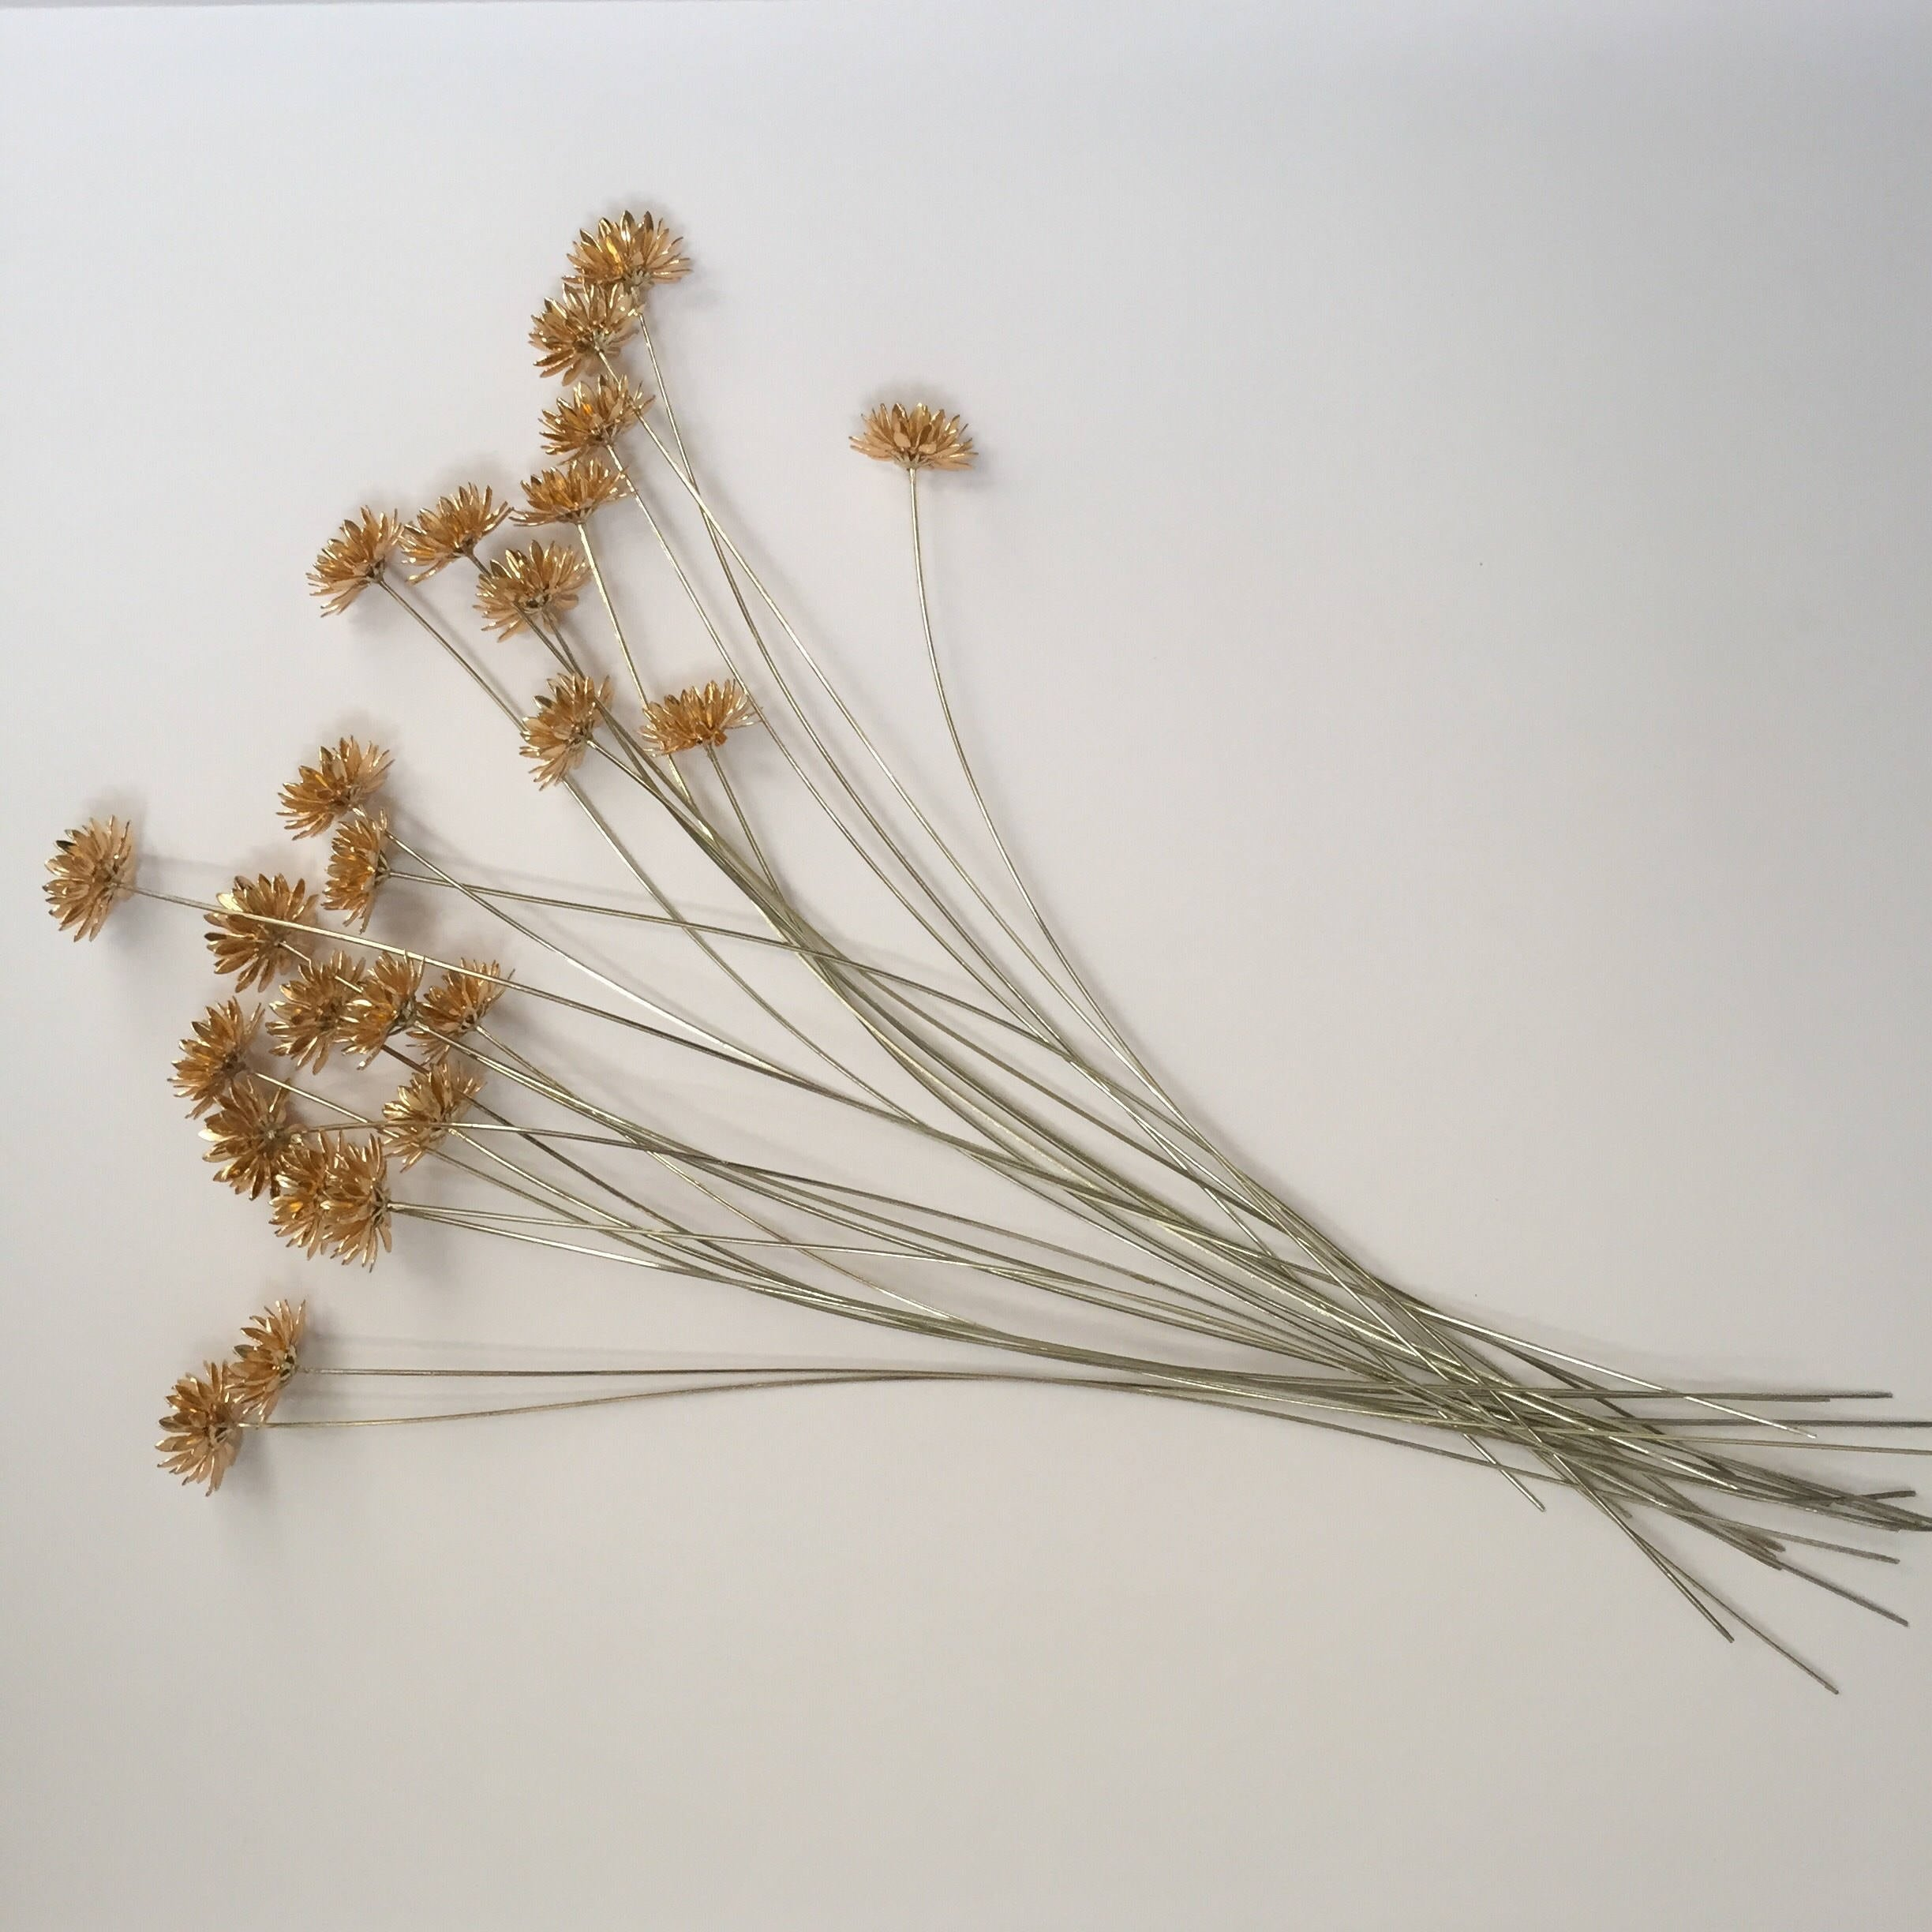 24 Small vintage metal yellow gold flowers with wire stem; floral ...